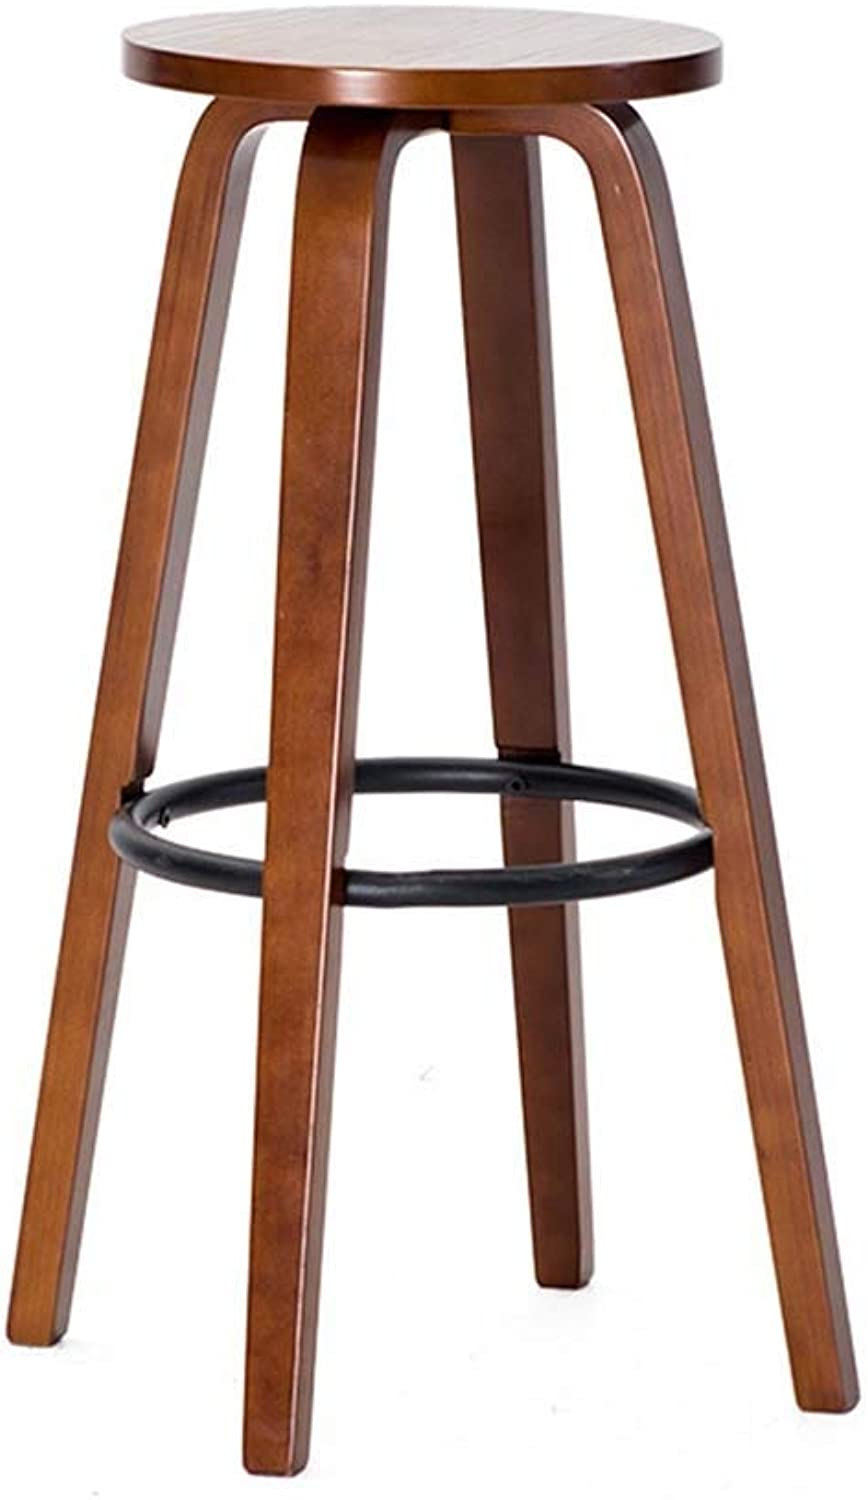 ZHAOYONGLI Barstools,Stools Solid Wood bar Chair Round high Stool bar Stool Home Coffee Stool (color   Brown Chair Frame (Iron Ring))